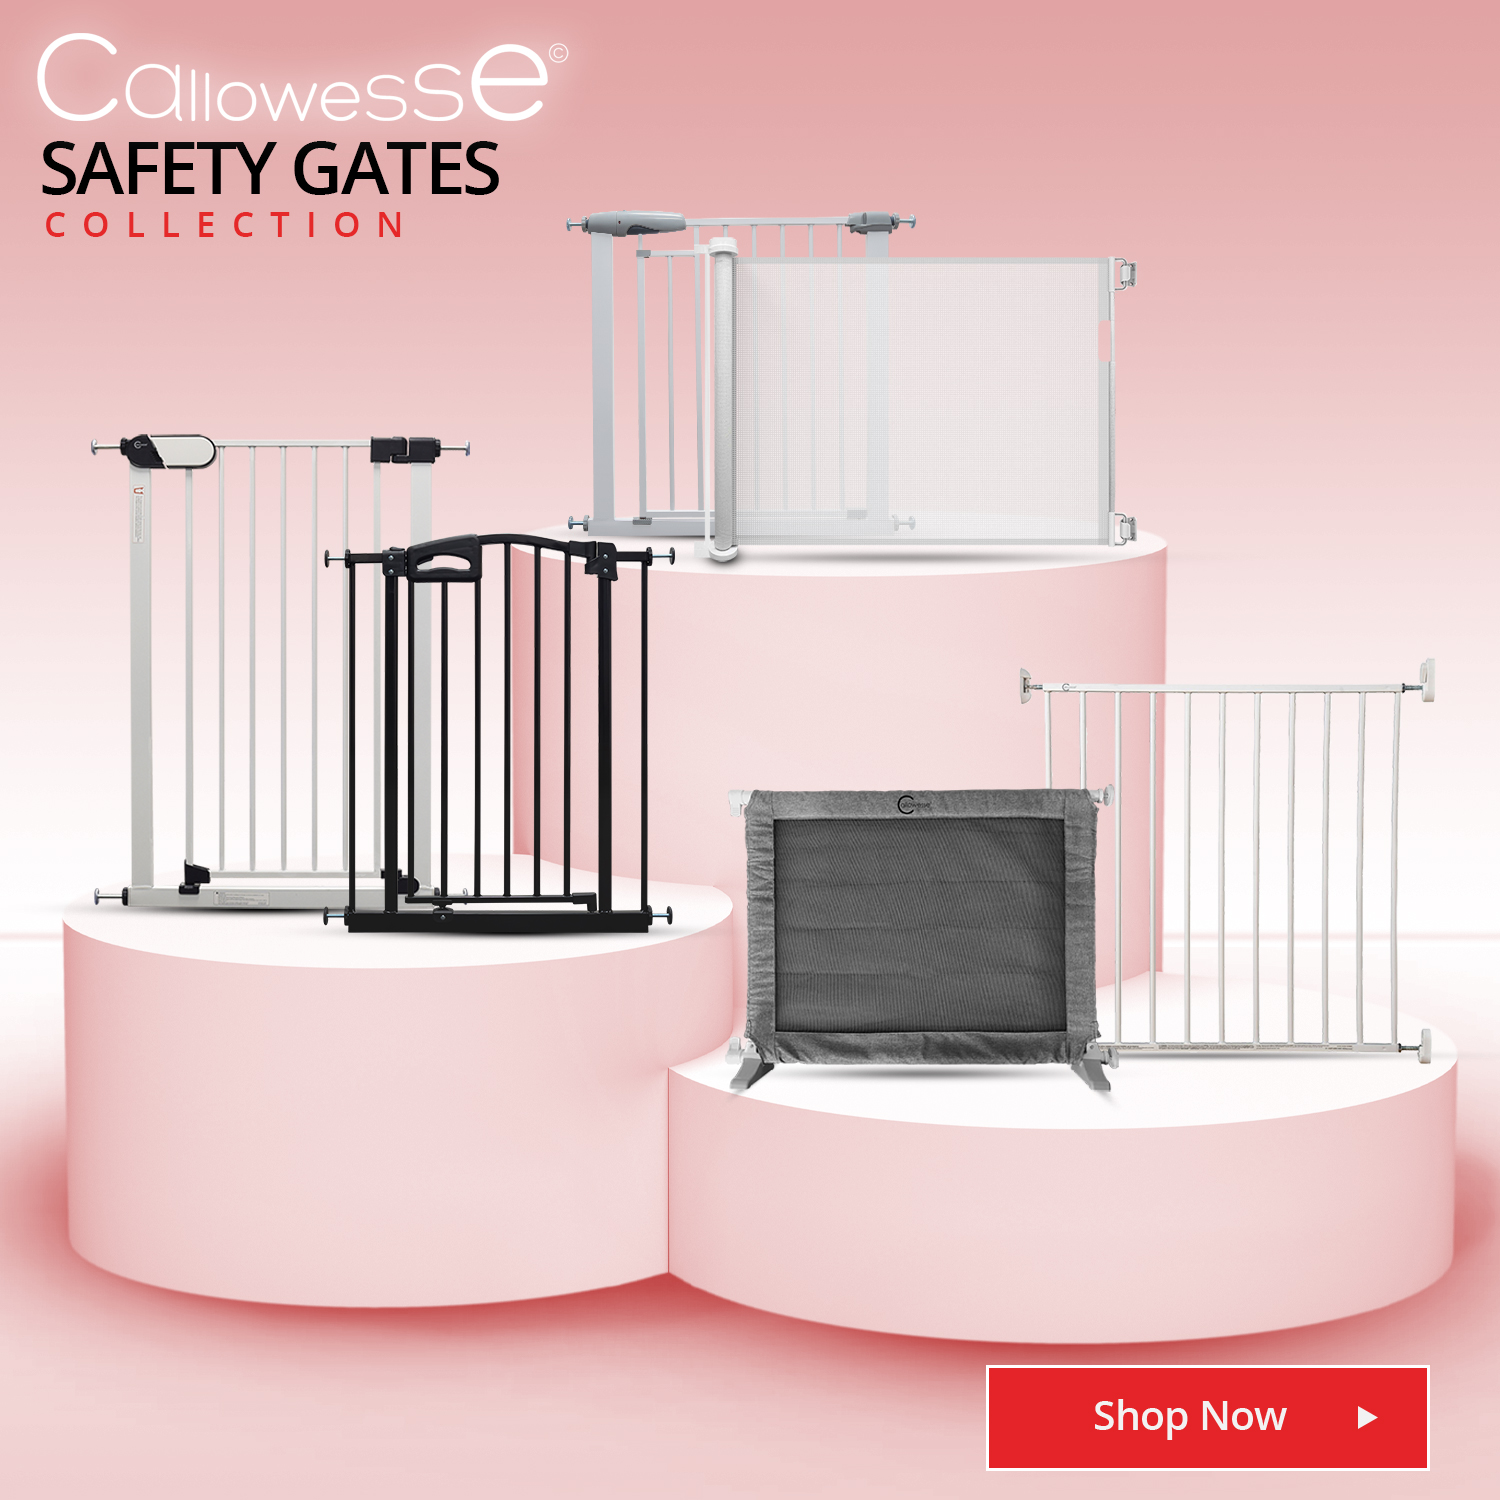 Callowesse Safety-Gate